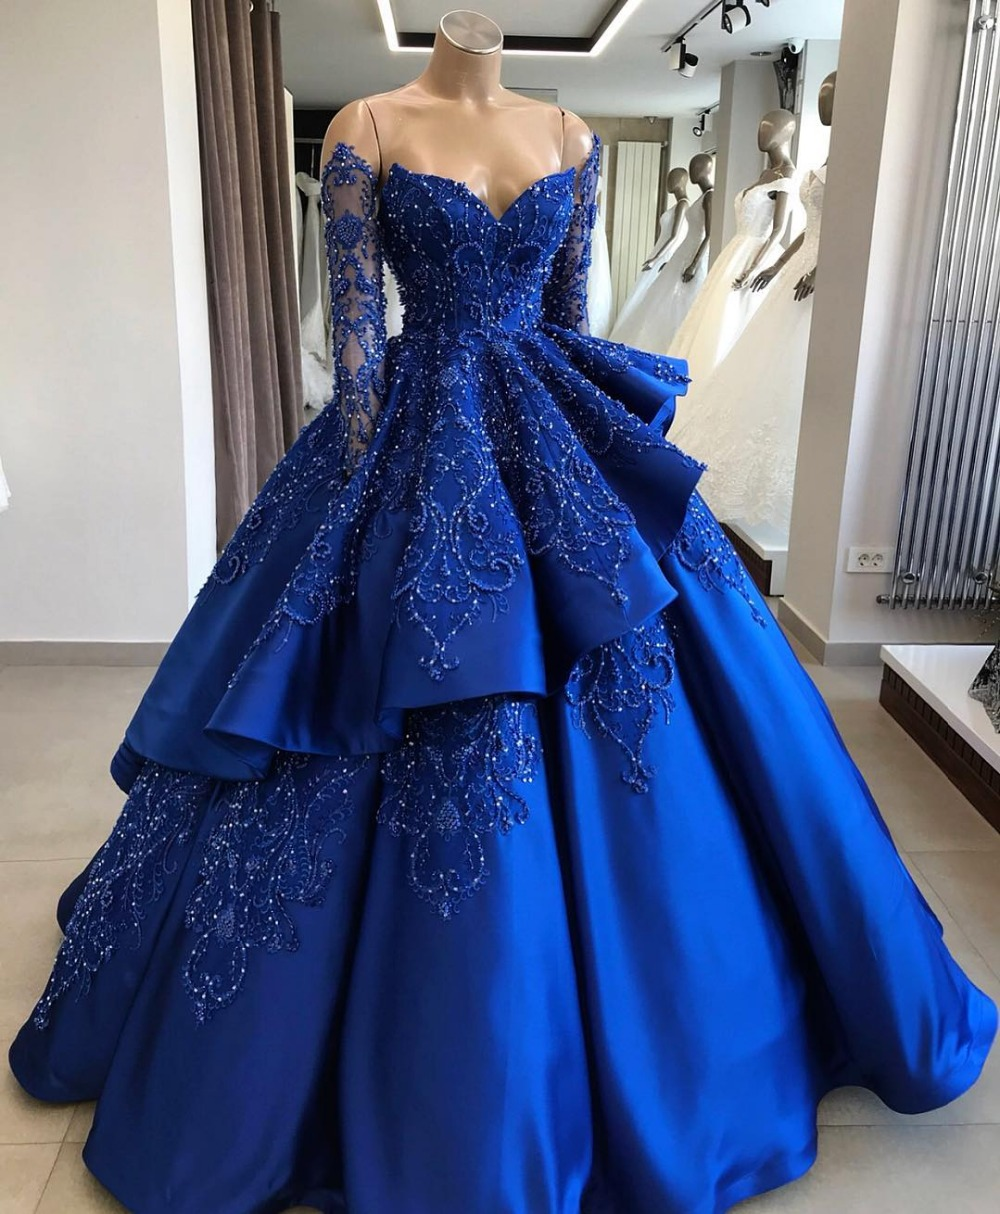 2019 New Listing Blue Evening Dress Long Sleeves Lace Beaded Floor Length Evening Dresses Formal Party Gowns Vestido